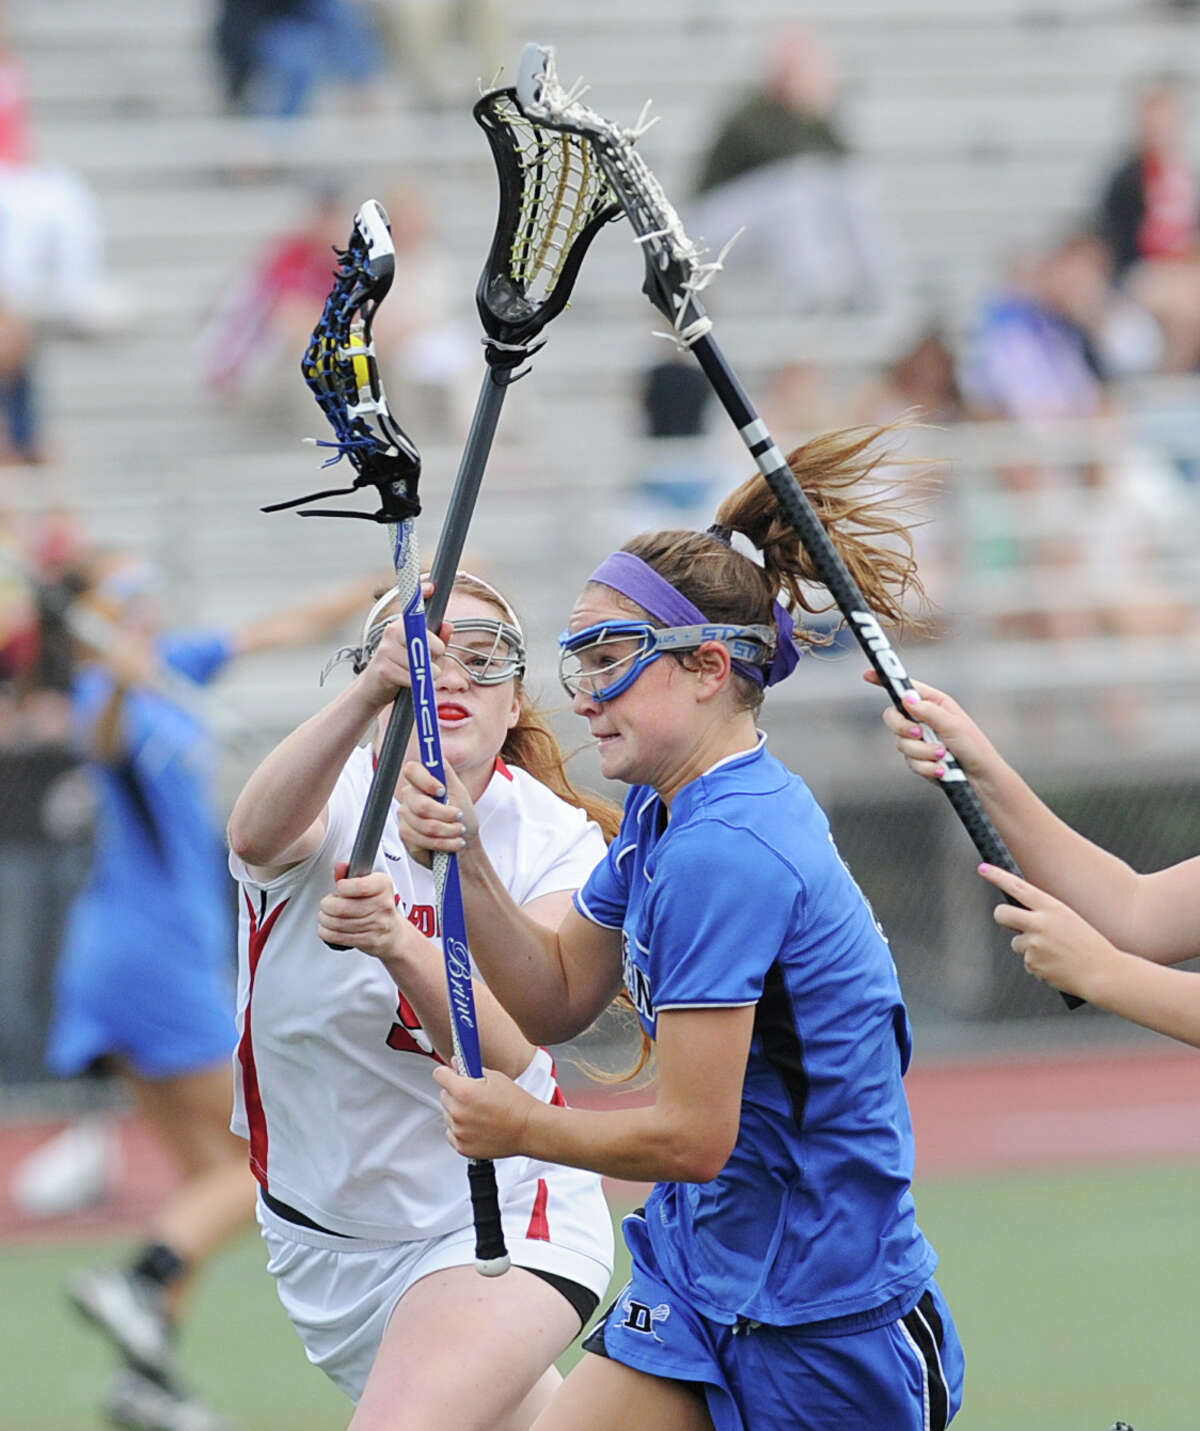 FCIAC girls lacrosse finals between Greenwich High School and Darien High School at Brien McMahon High School in Norwalk, Friday, May 25, 2012. Darien won the championship over Greenwich 17-14.